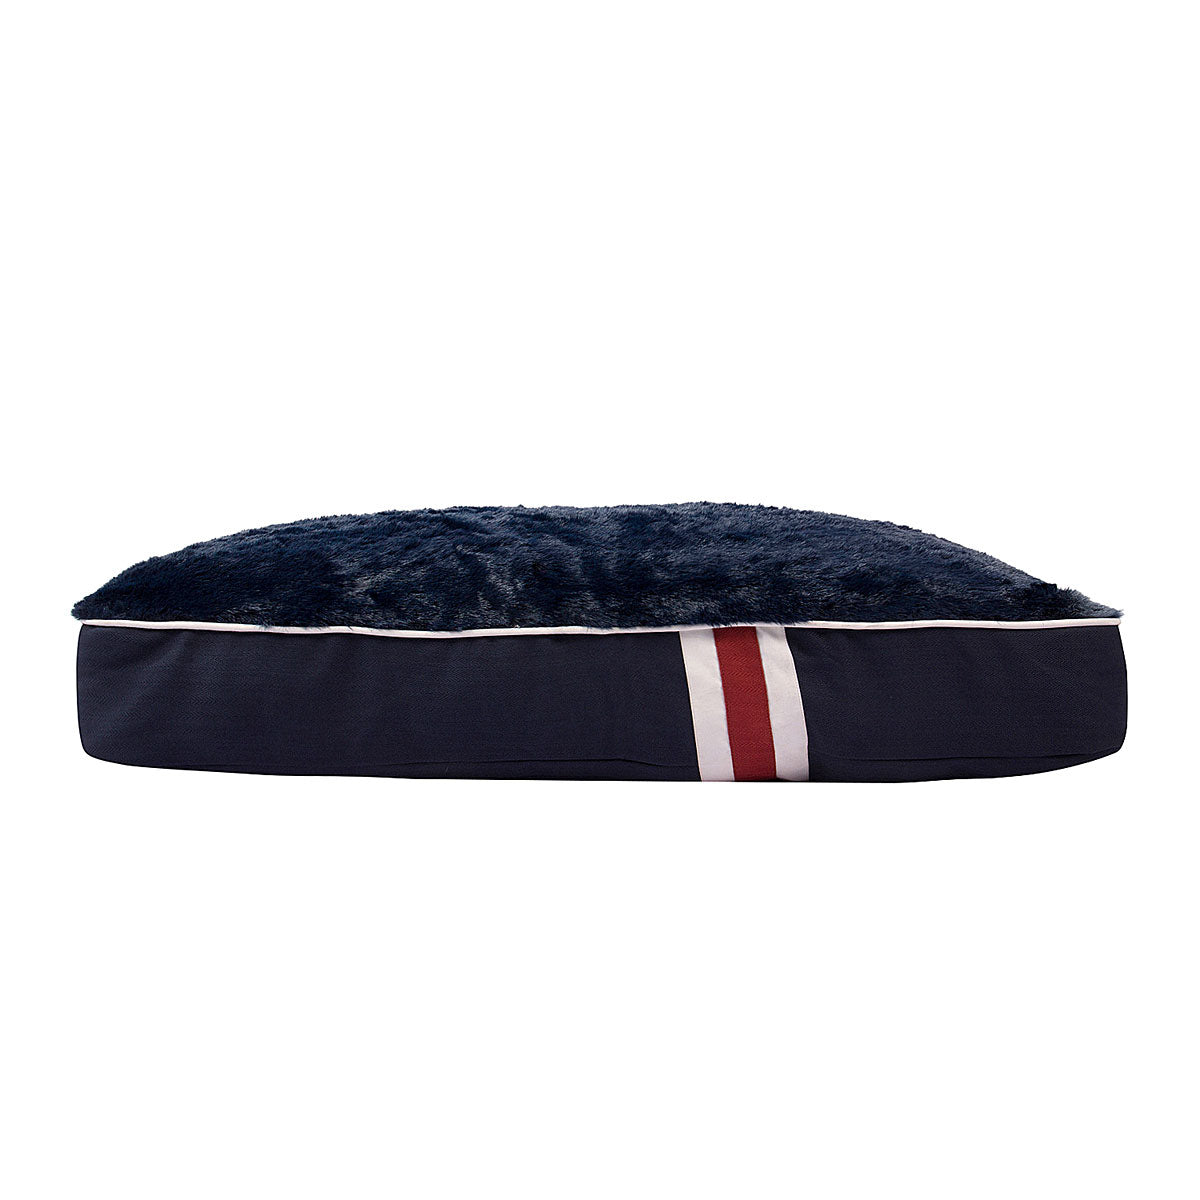 Sam Rectangular Dog Bed - Halo - Breeches.com